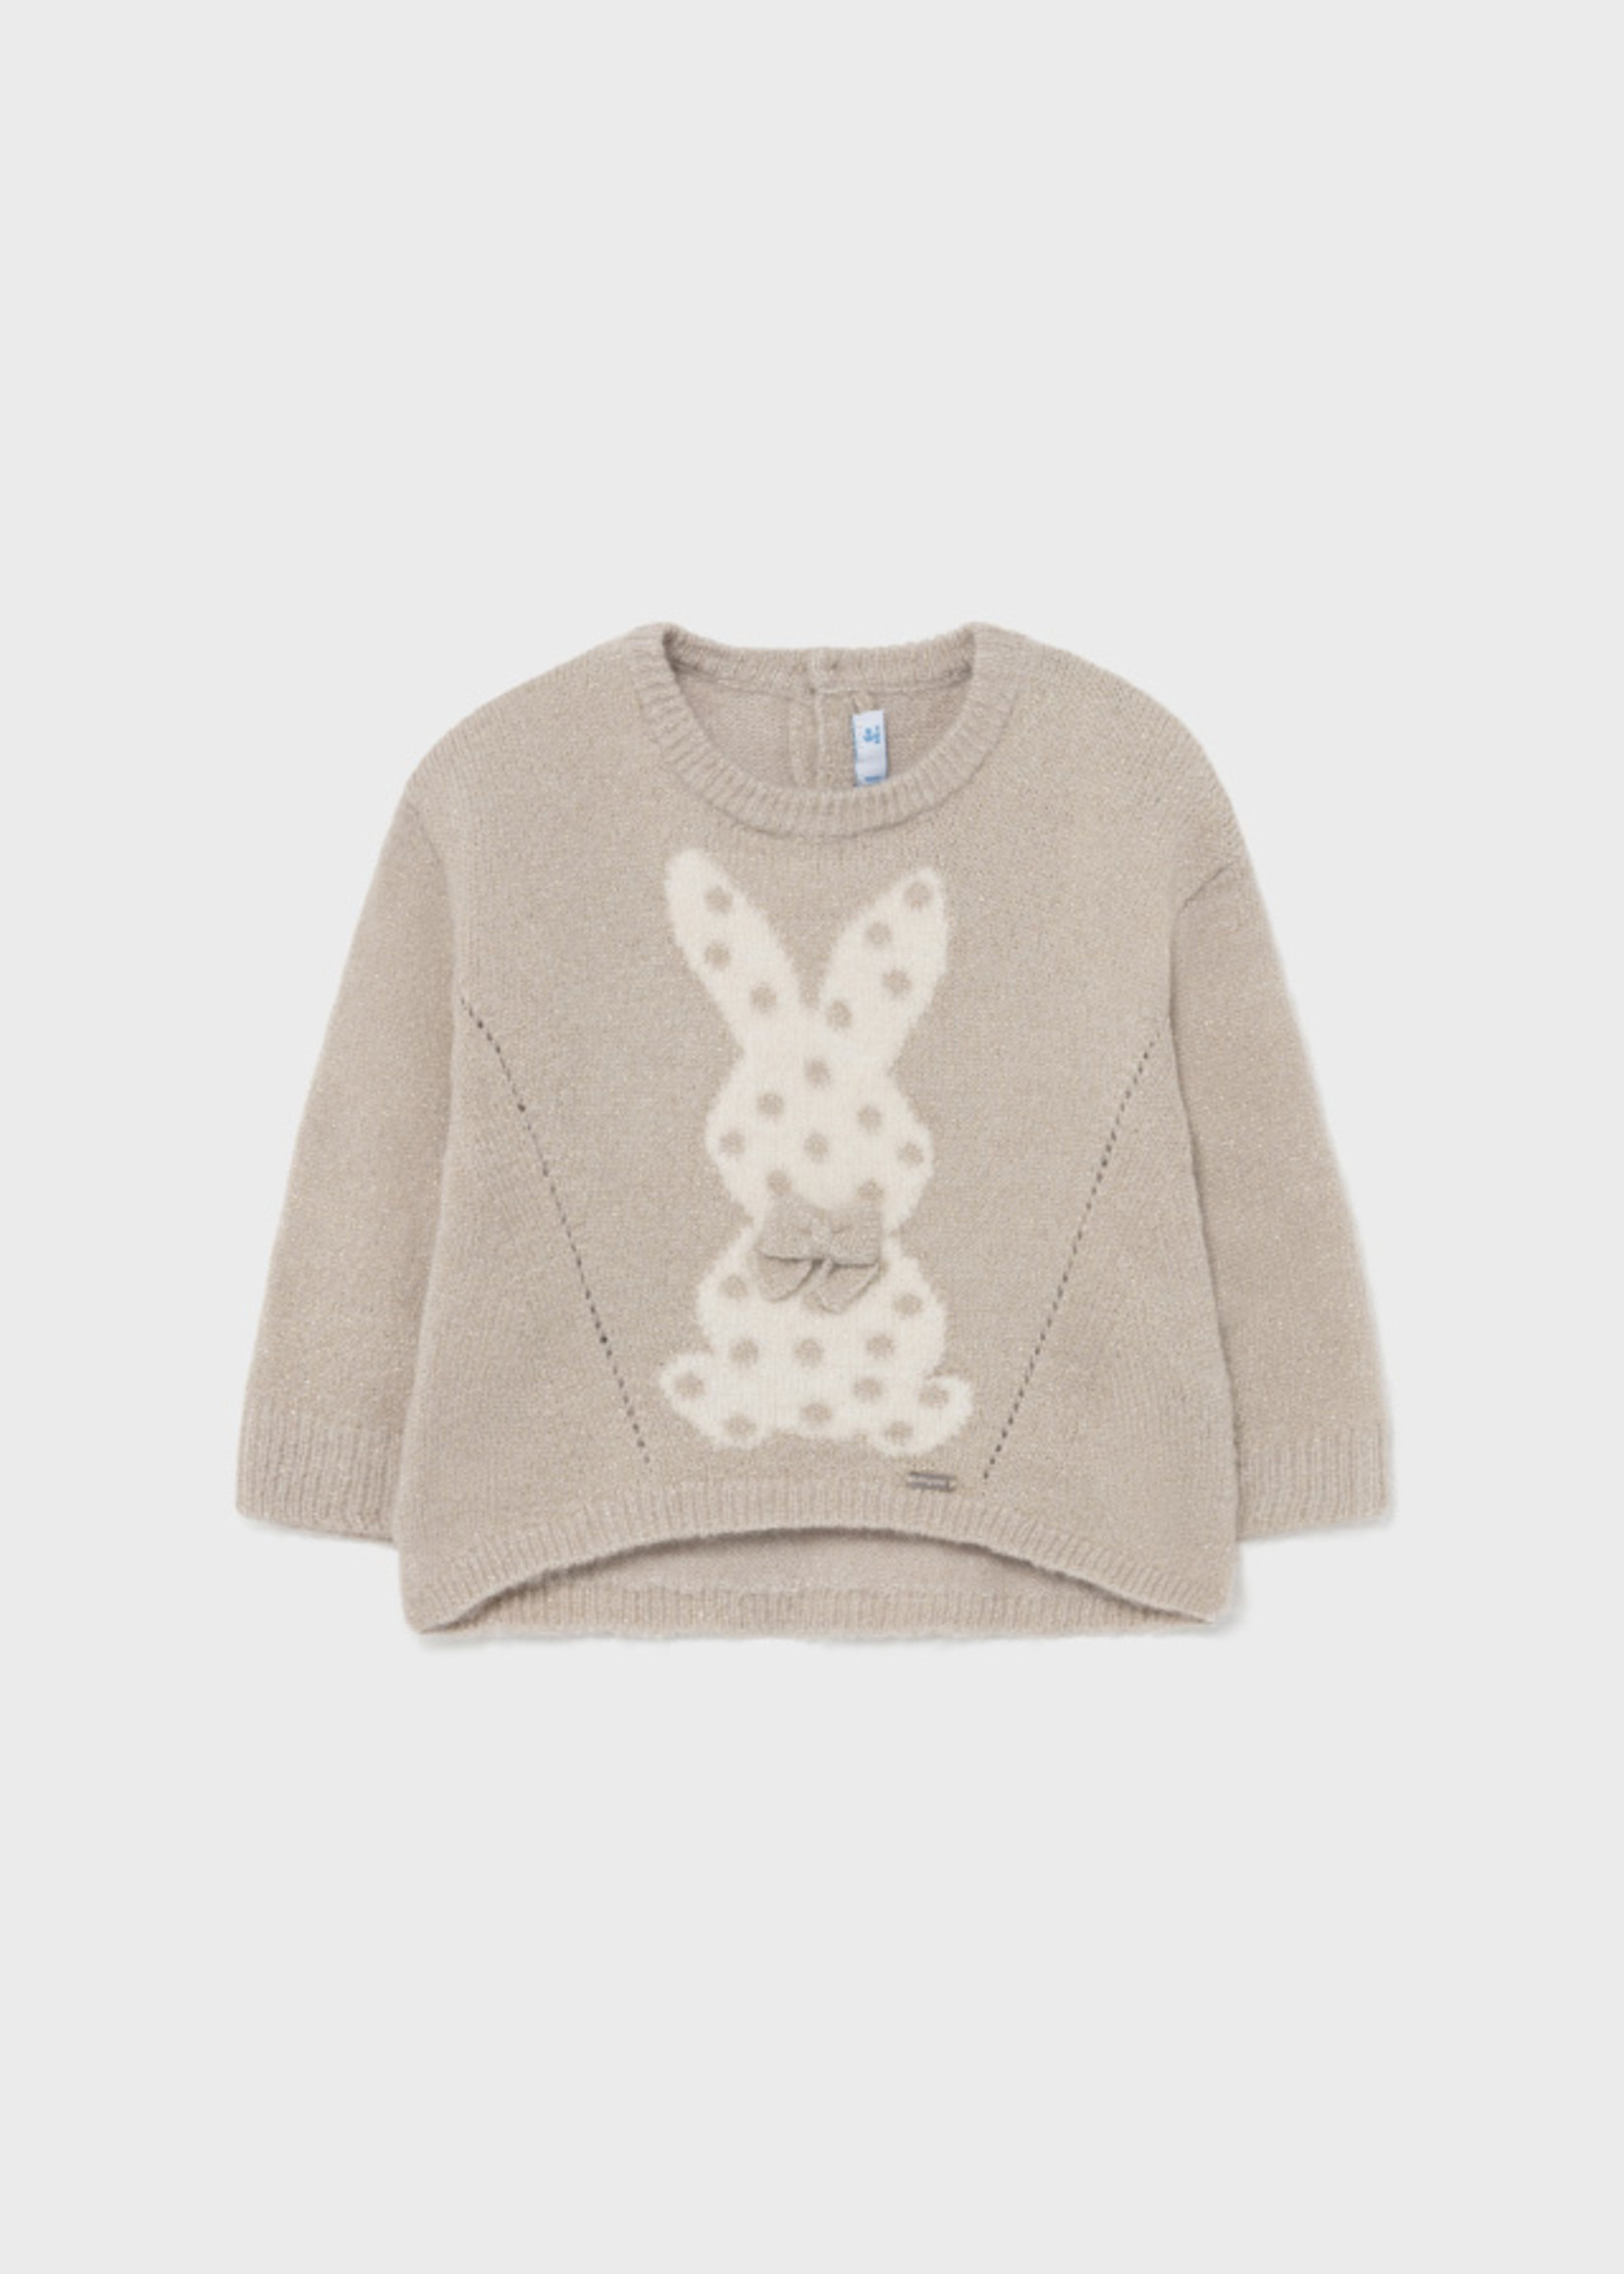 Mayoral Mayoral bunny sweater for baby girl cookie